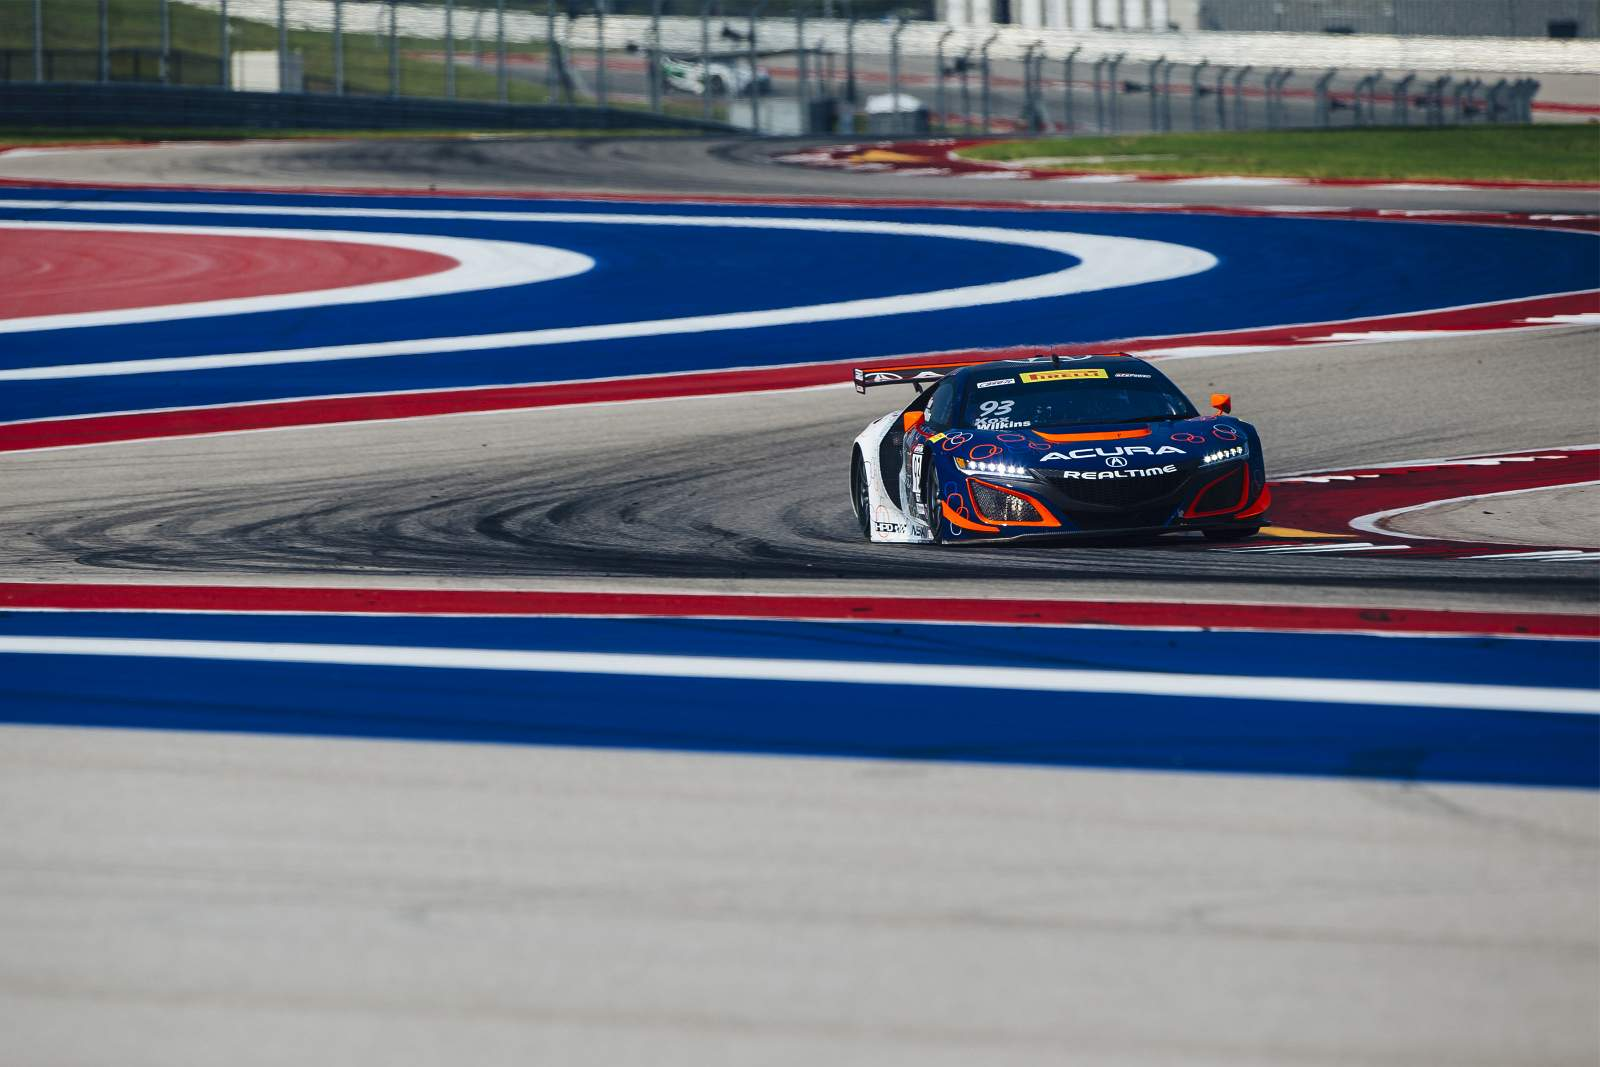 peter-kox-realtime-racing-pirelli-world-challenge-cota--004